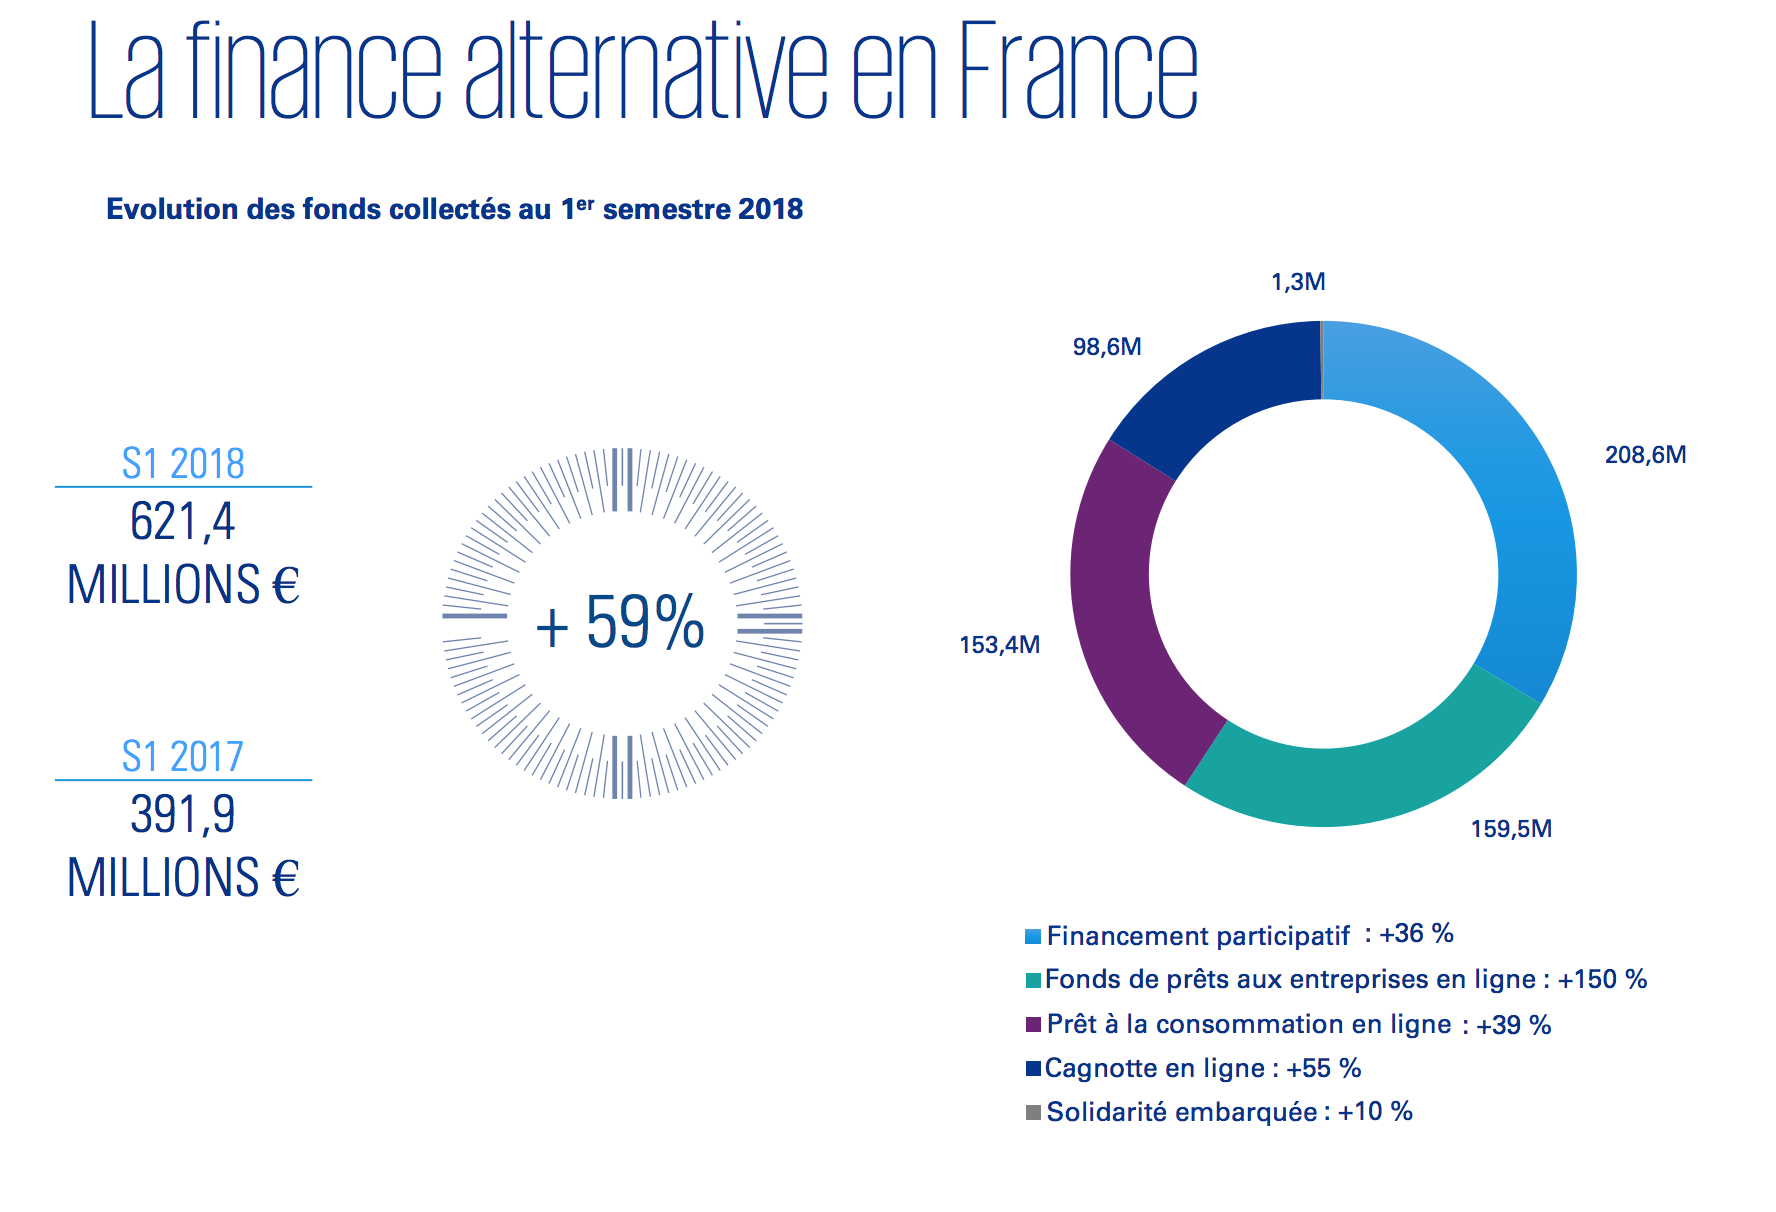 Baromètre du crowdfunding et de la finance alternative en France au premier semestre 2018